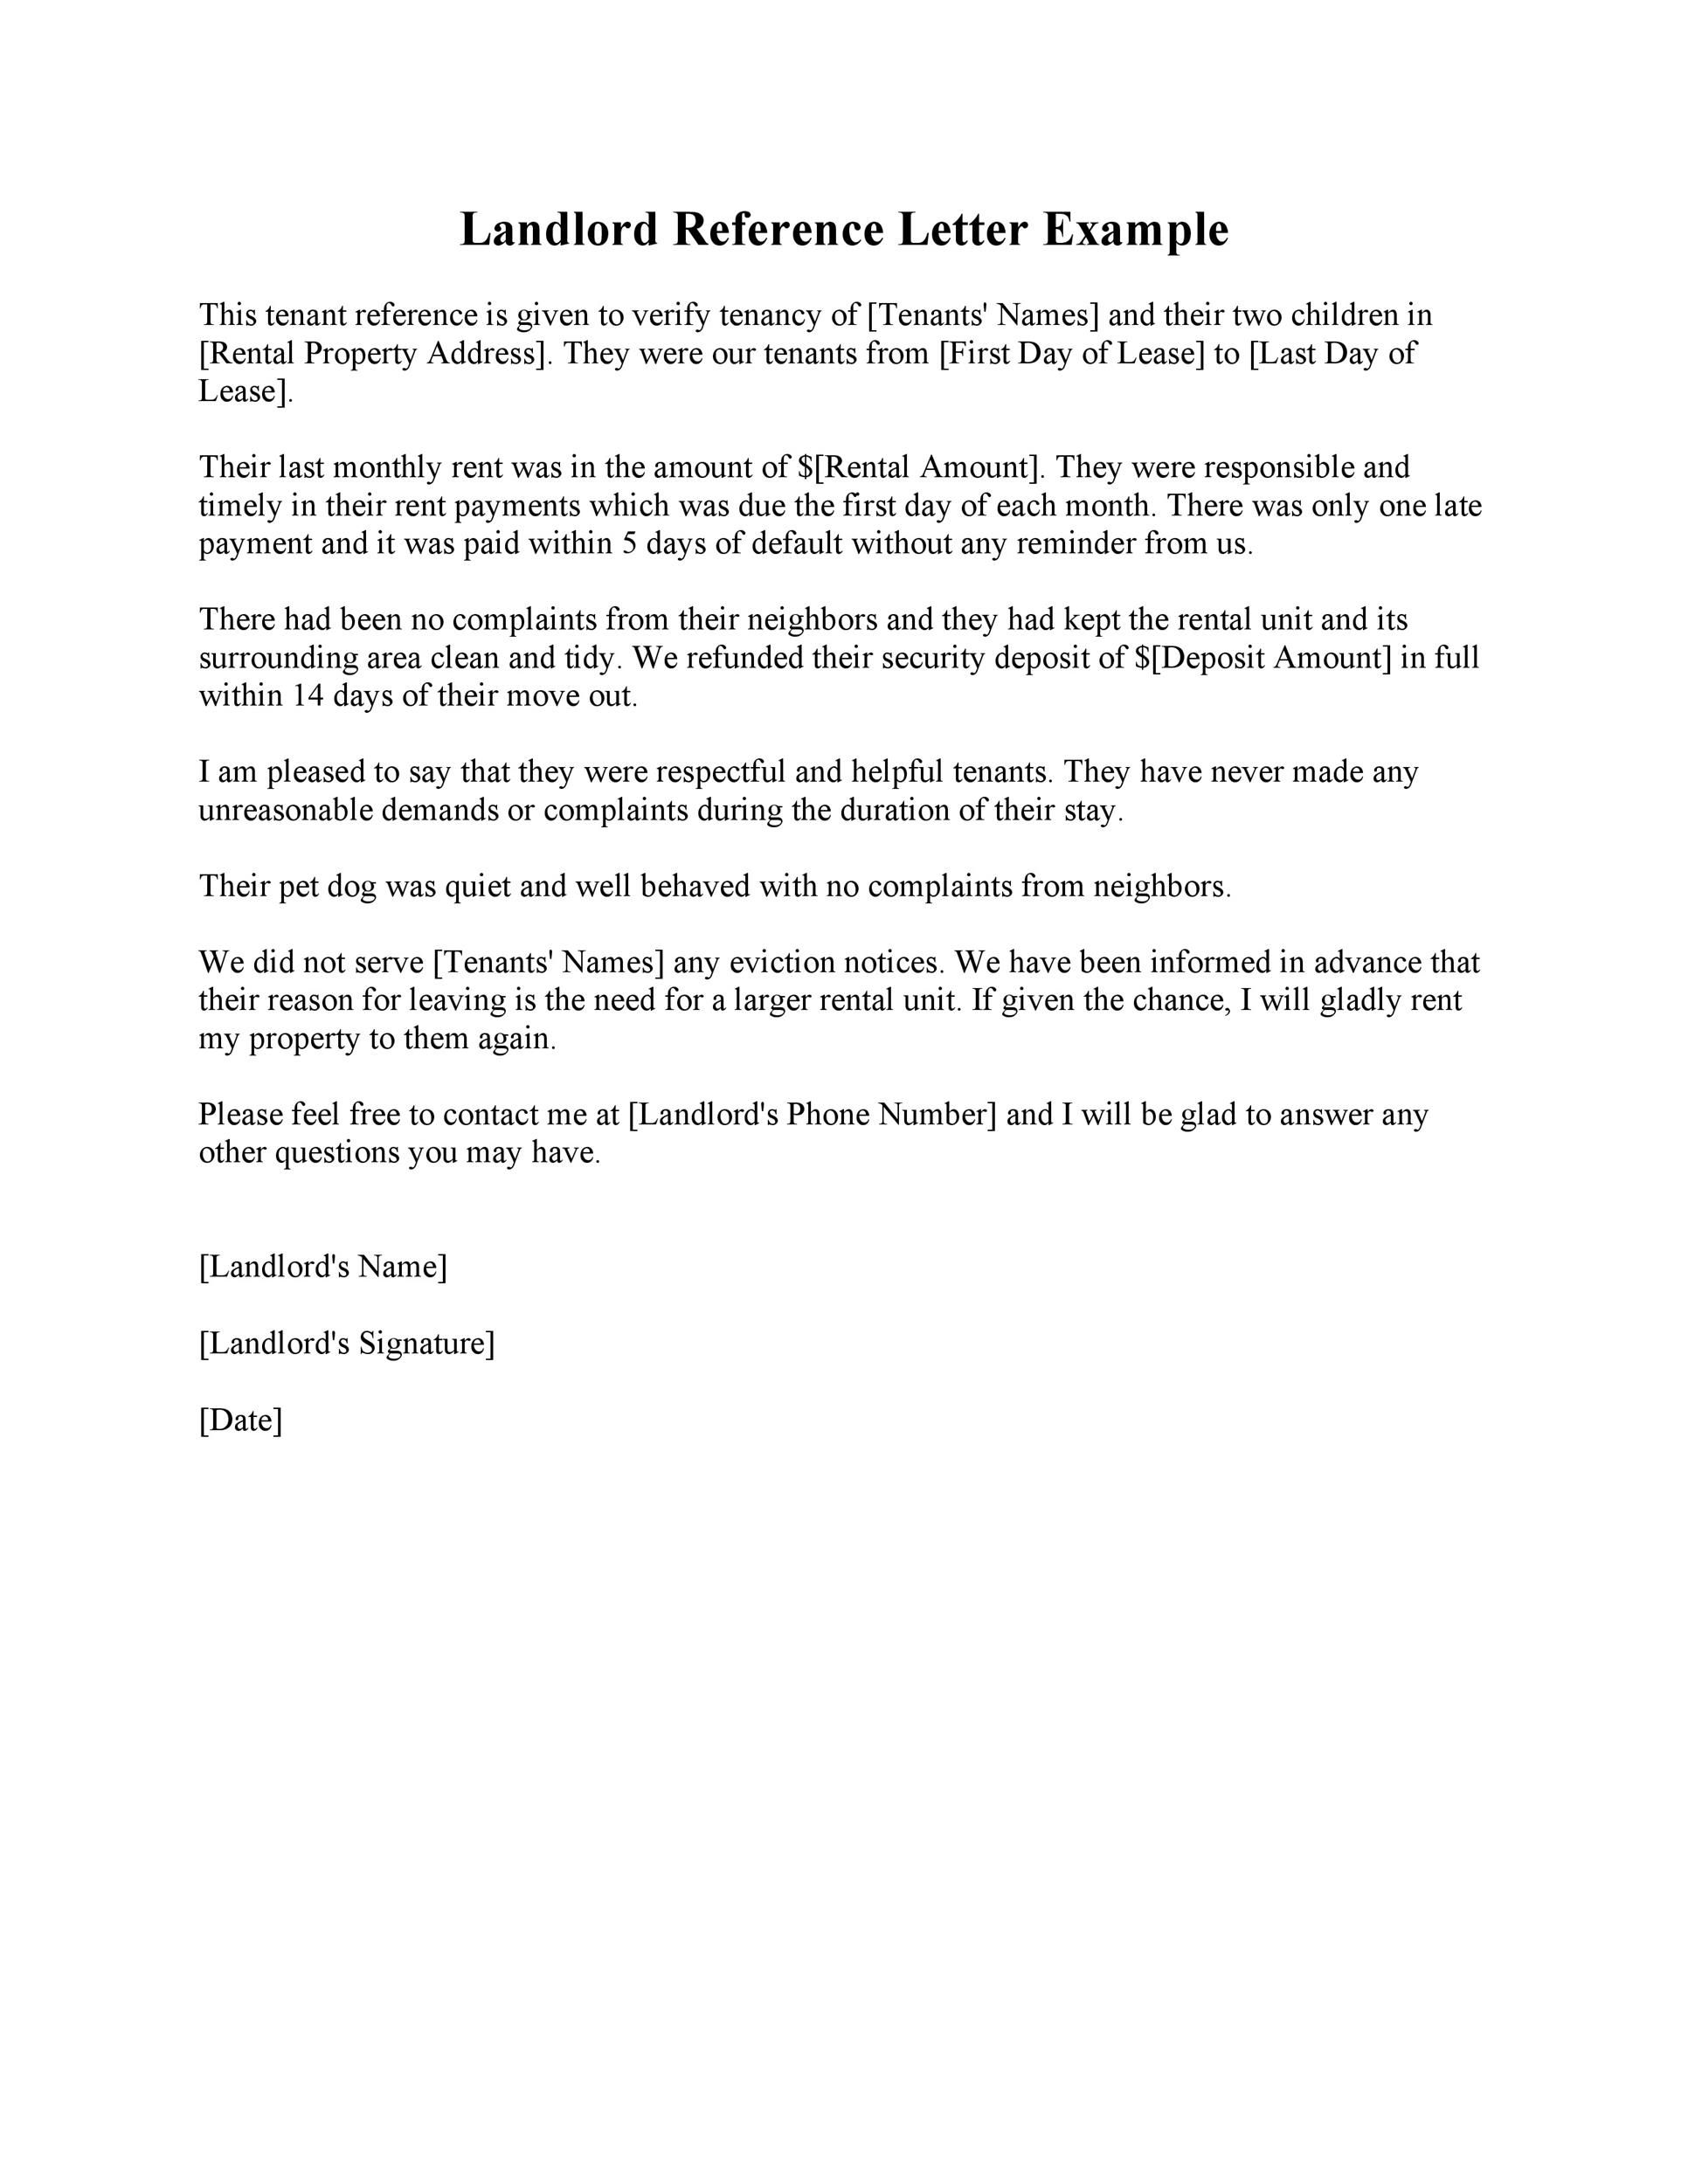 002 Magnificent Free Reference Letter Template For Tenant Image Full